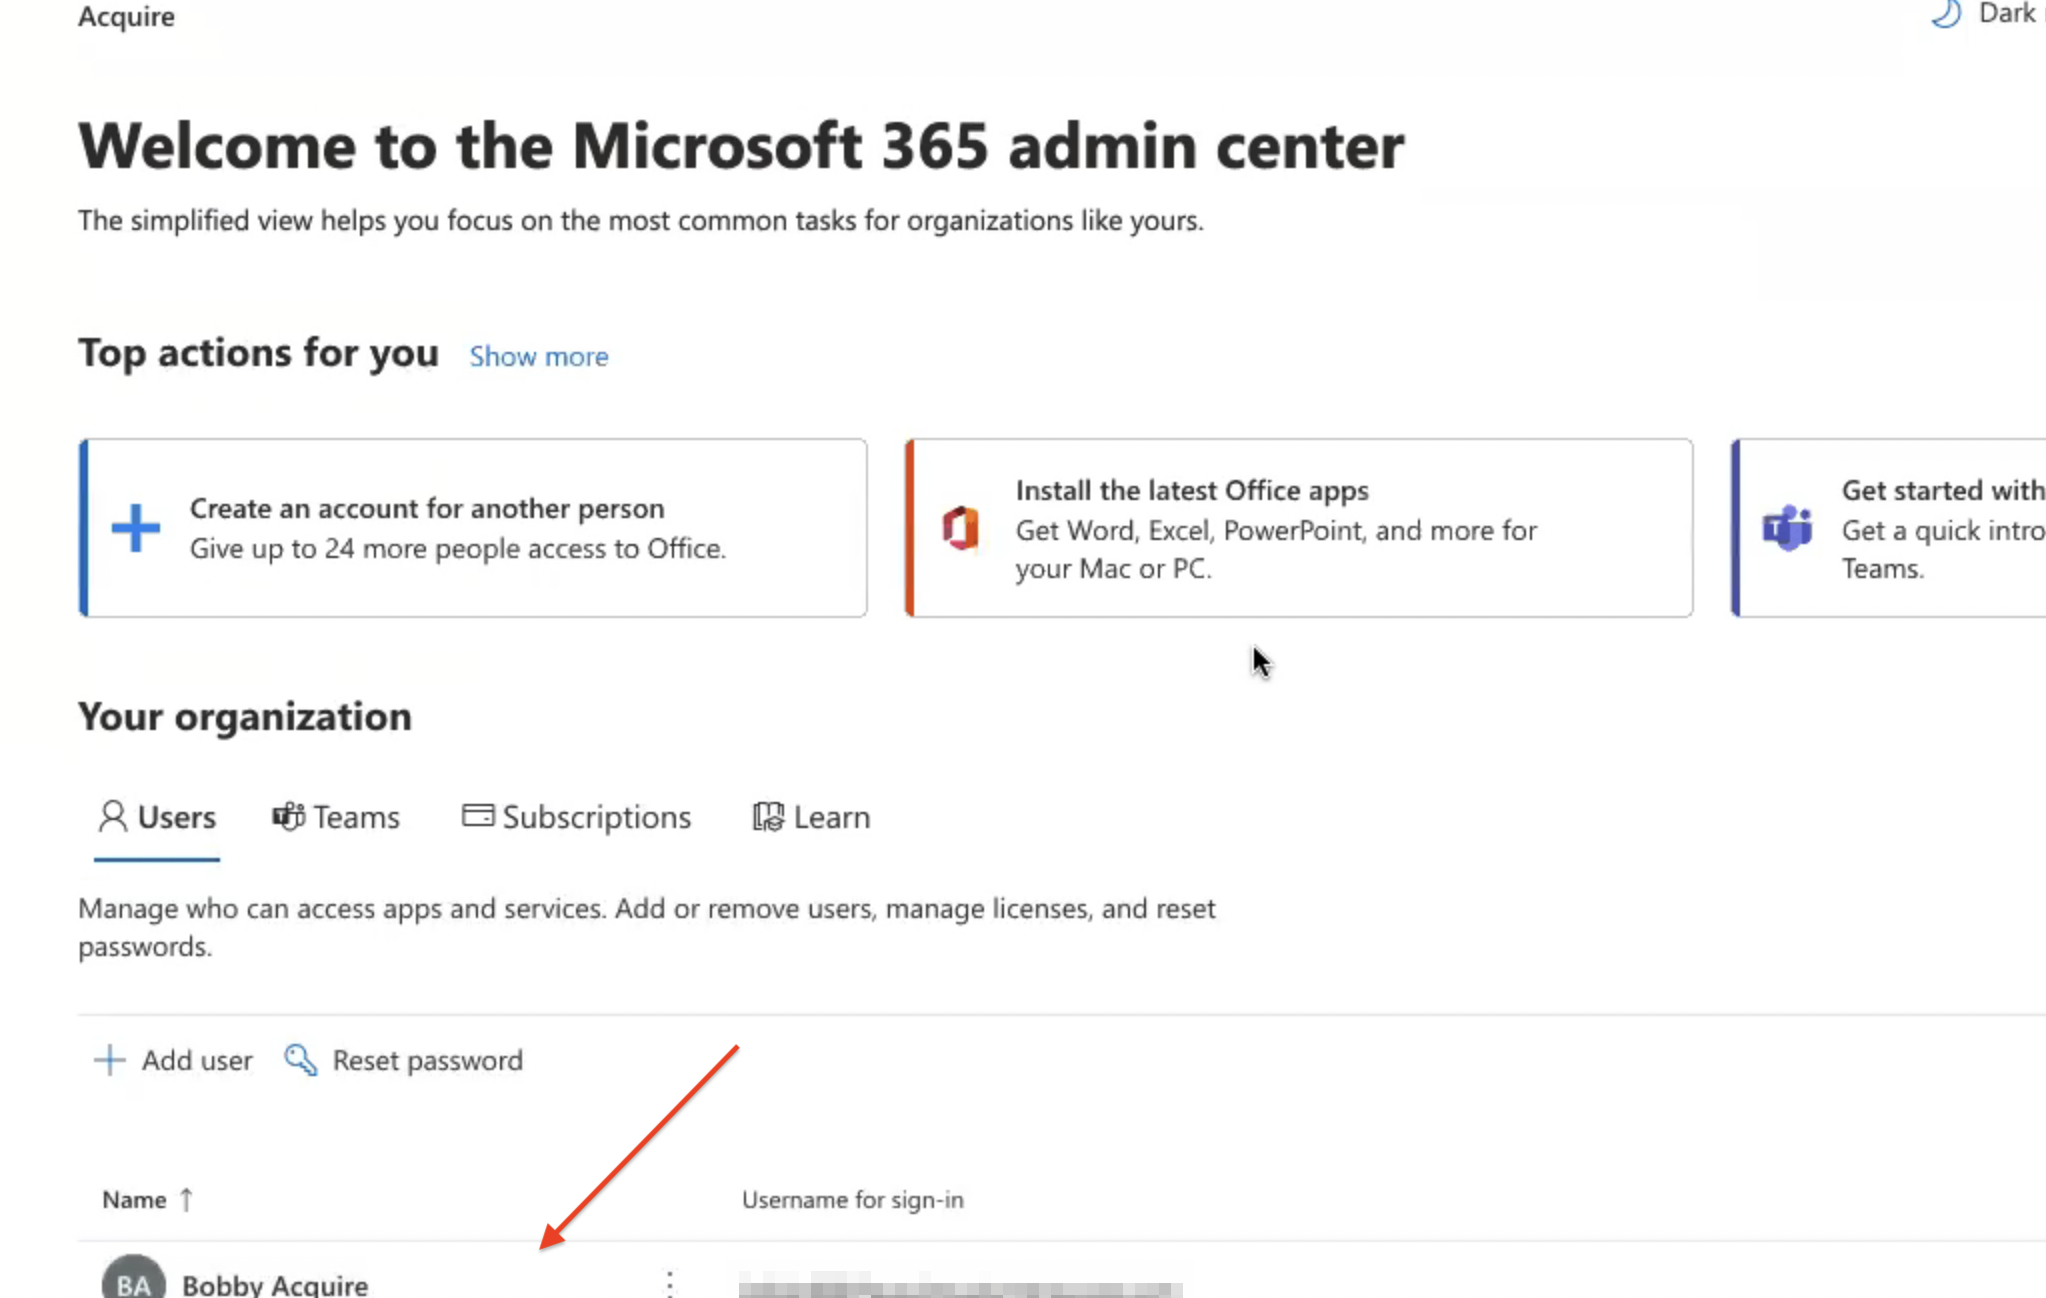 microsoft-admin-center-showing-new-username-email-243cf78662a3b0ea58a1d909.png